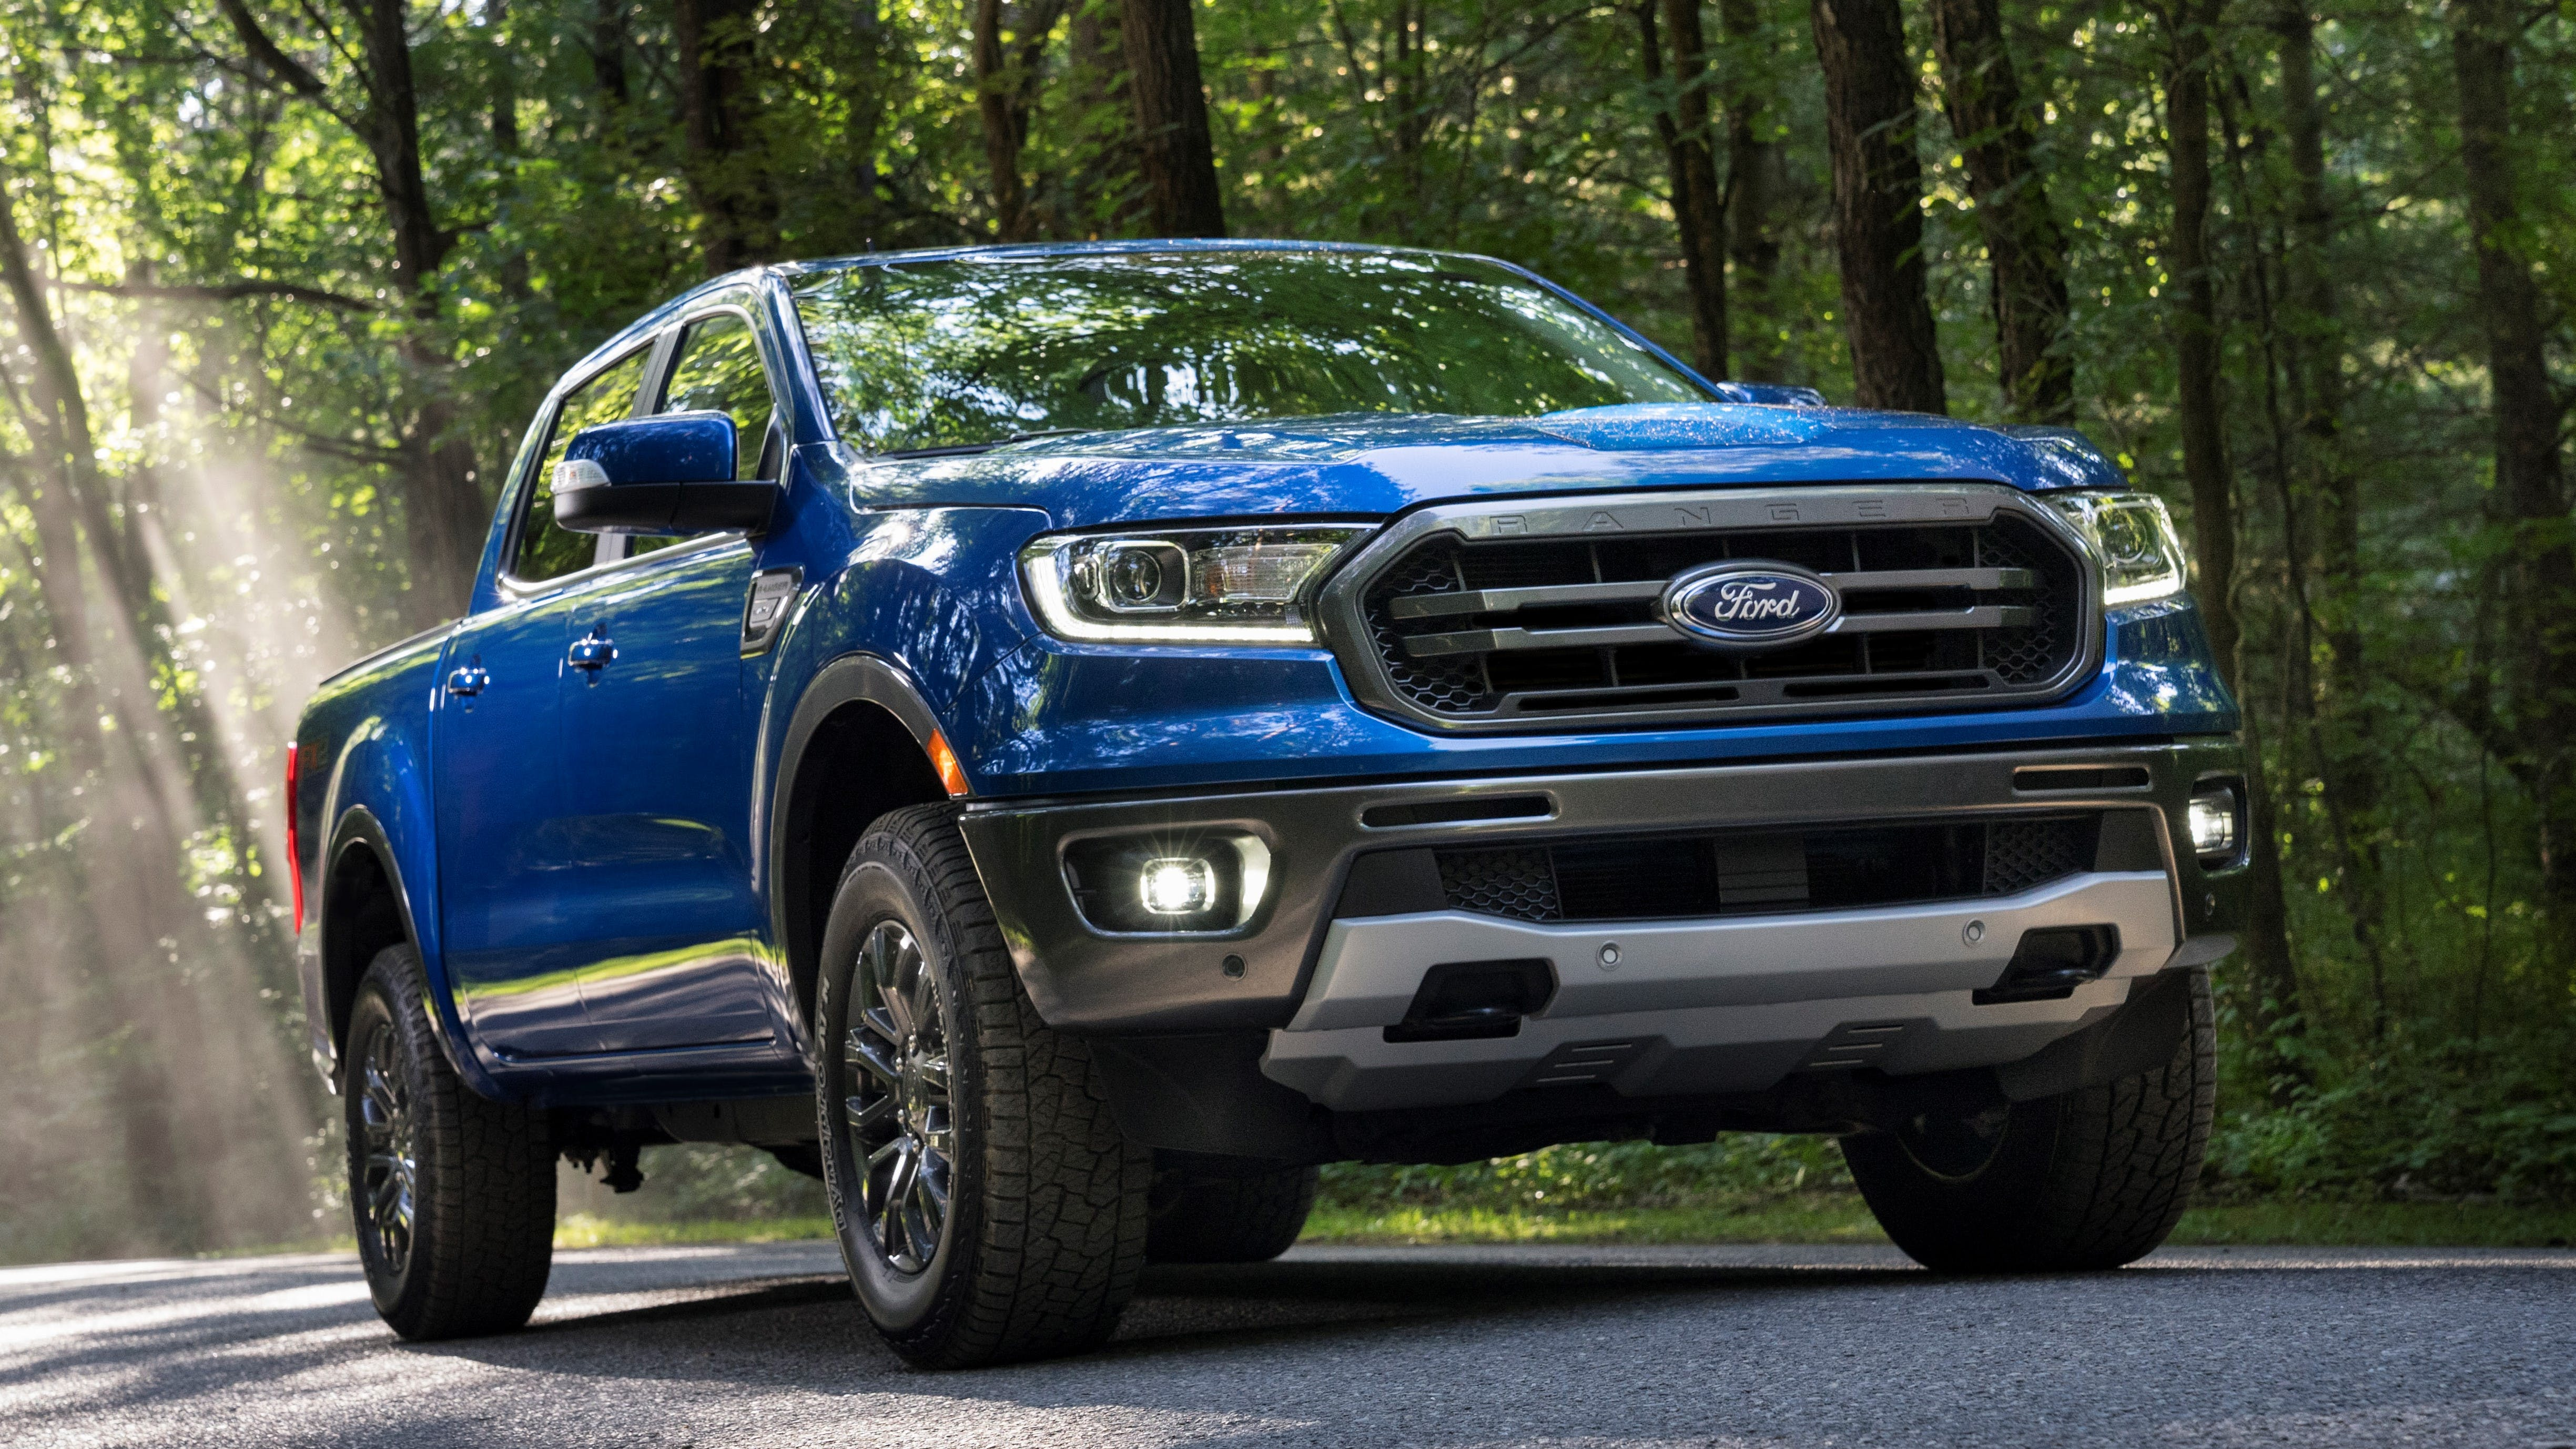 Best Trucks for Fuel Economy in 2020